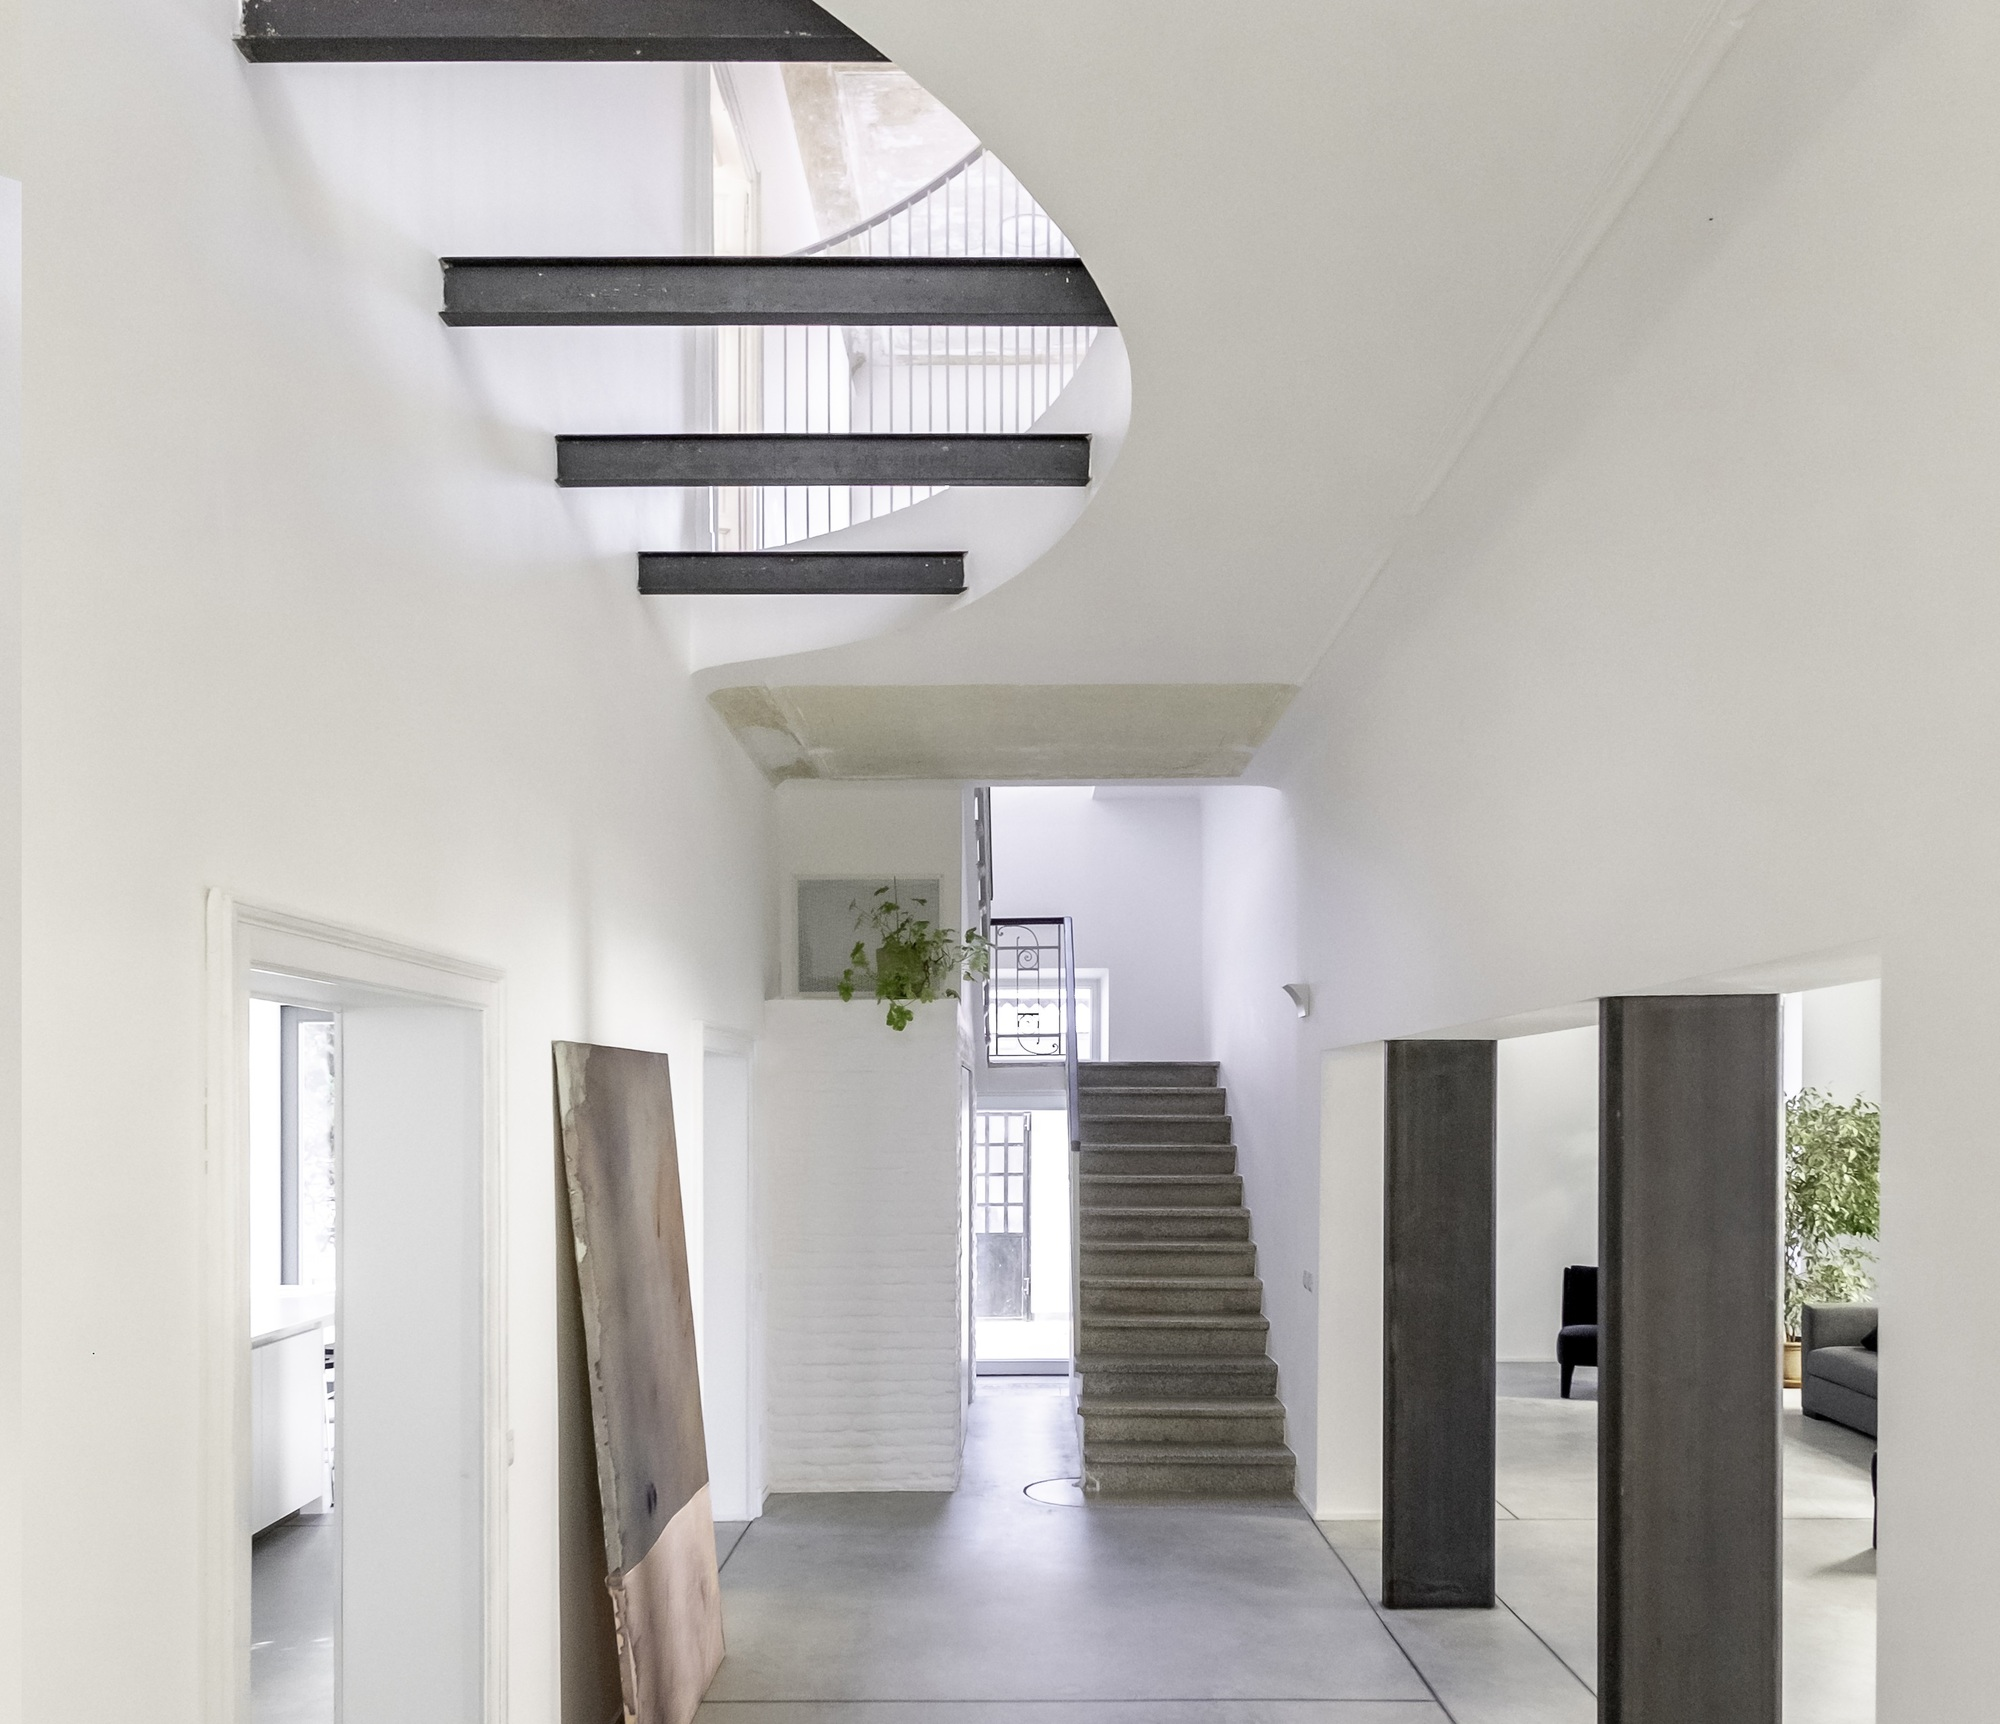 Home Design Busto Arsizio cm house / o a s i architects | archdaily